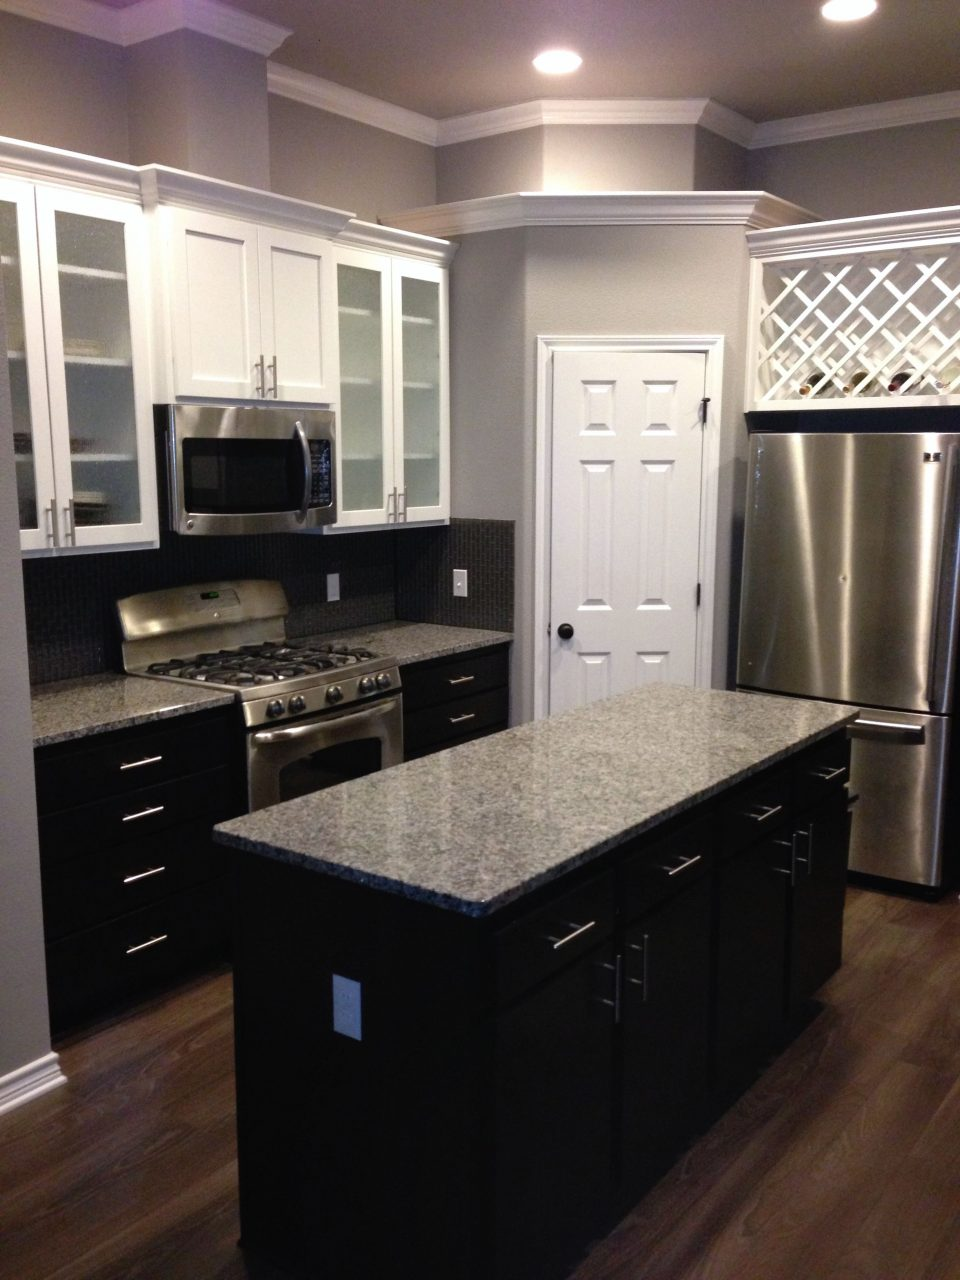 White Upper Cabinets With Espresso Lower Cabinets Love The Contrast